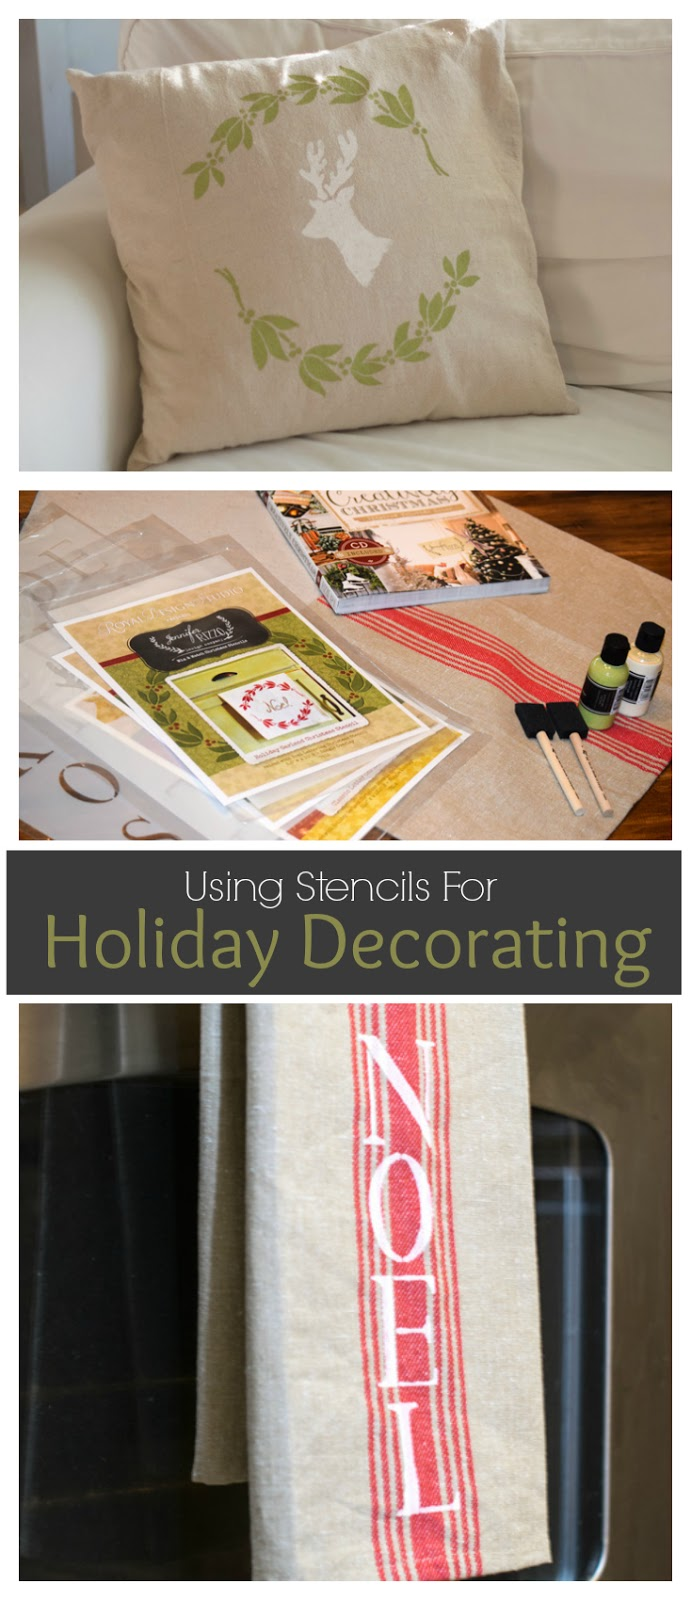 Use Stencils for Easy Holiday Decorating! Deck the Halls! Looking for a way to bring Creativity into your Holiday Decor? Use easy to find items like pillow covers or dish towels, along with stencils to decorate your home for the Holidays. Enjoy crafting your own decorations this Christmas! #Christmas #Holidays #crafts #HolidayIdeas